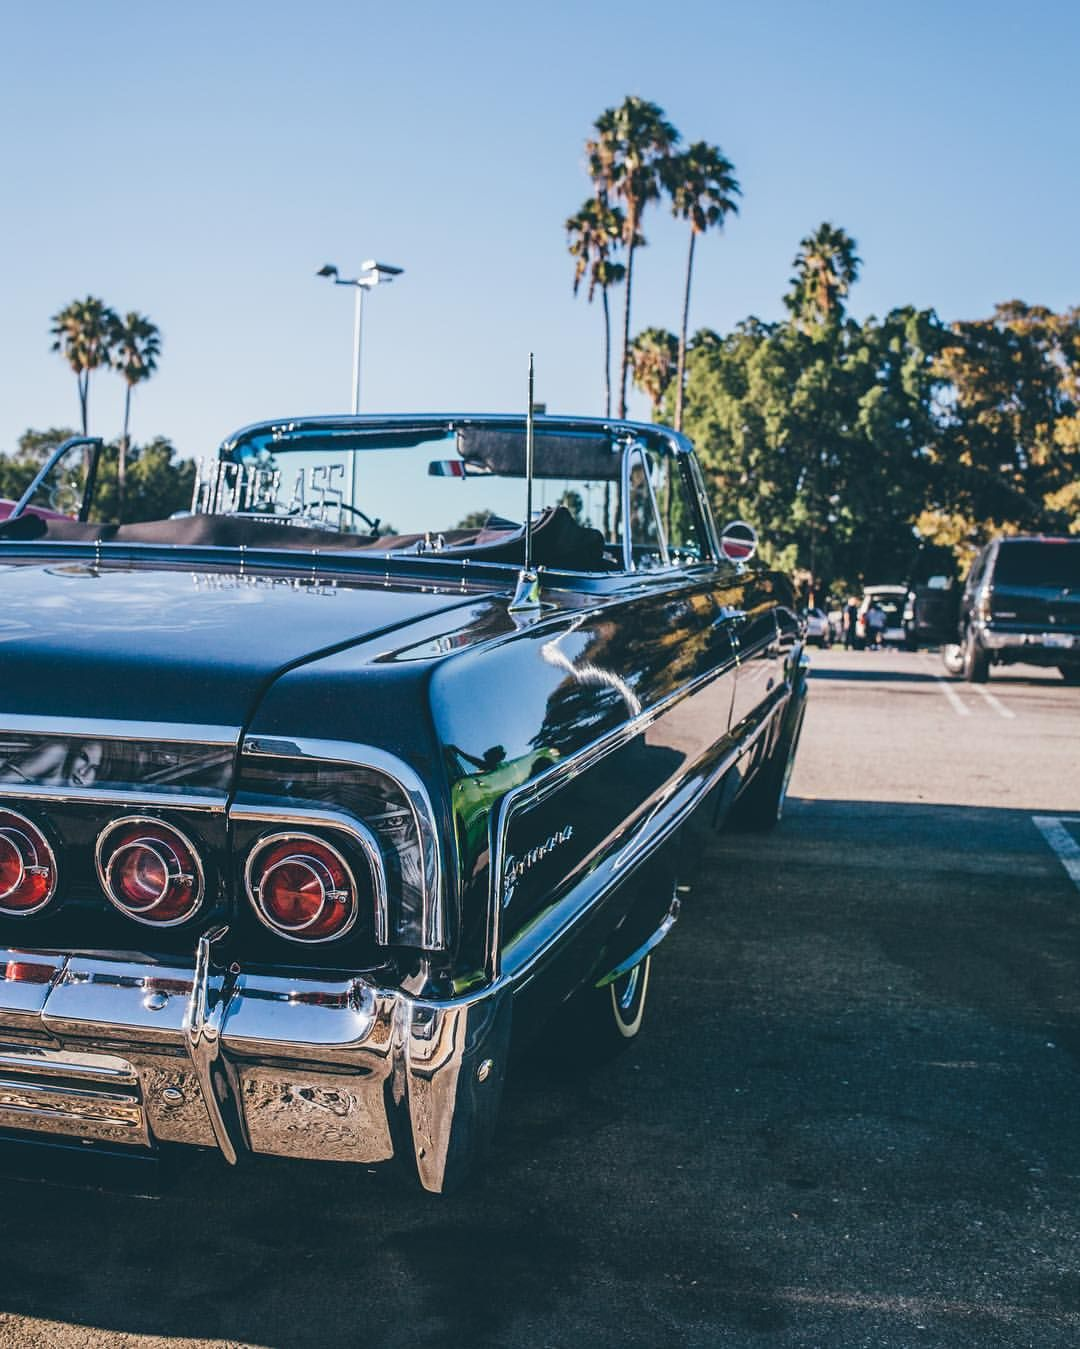 Pin By Katie Leech On Stuff I Ll Never Need But Do At The Same Time In 2020 Lowrider Trucks Lowrider Cars Classic Cars Muscle